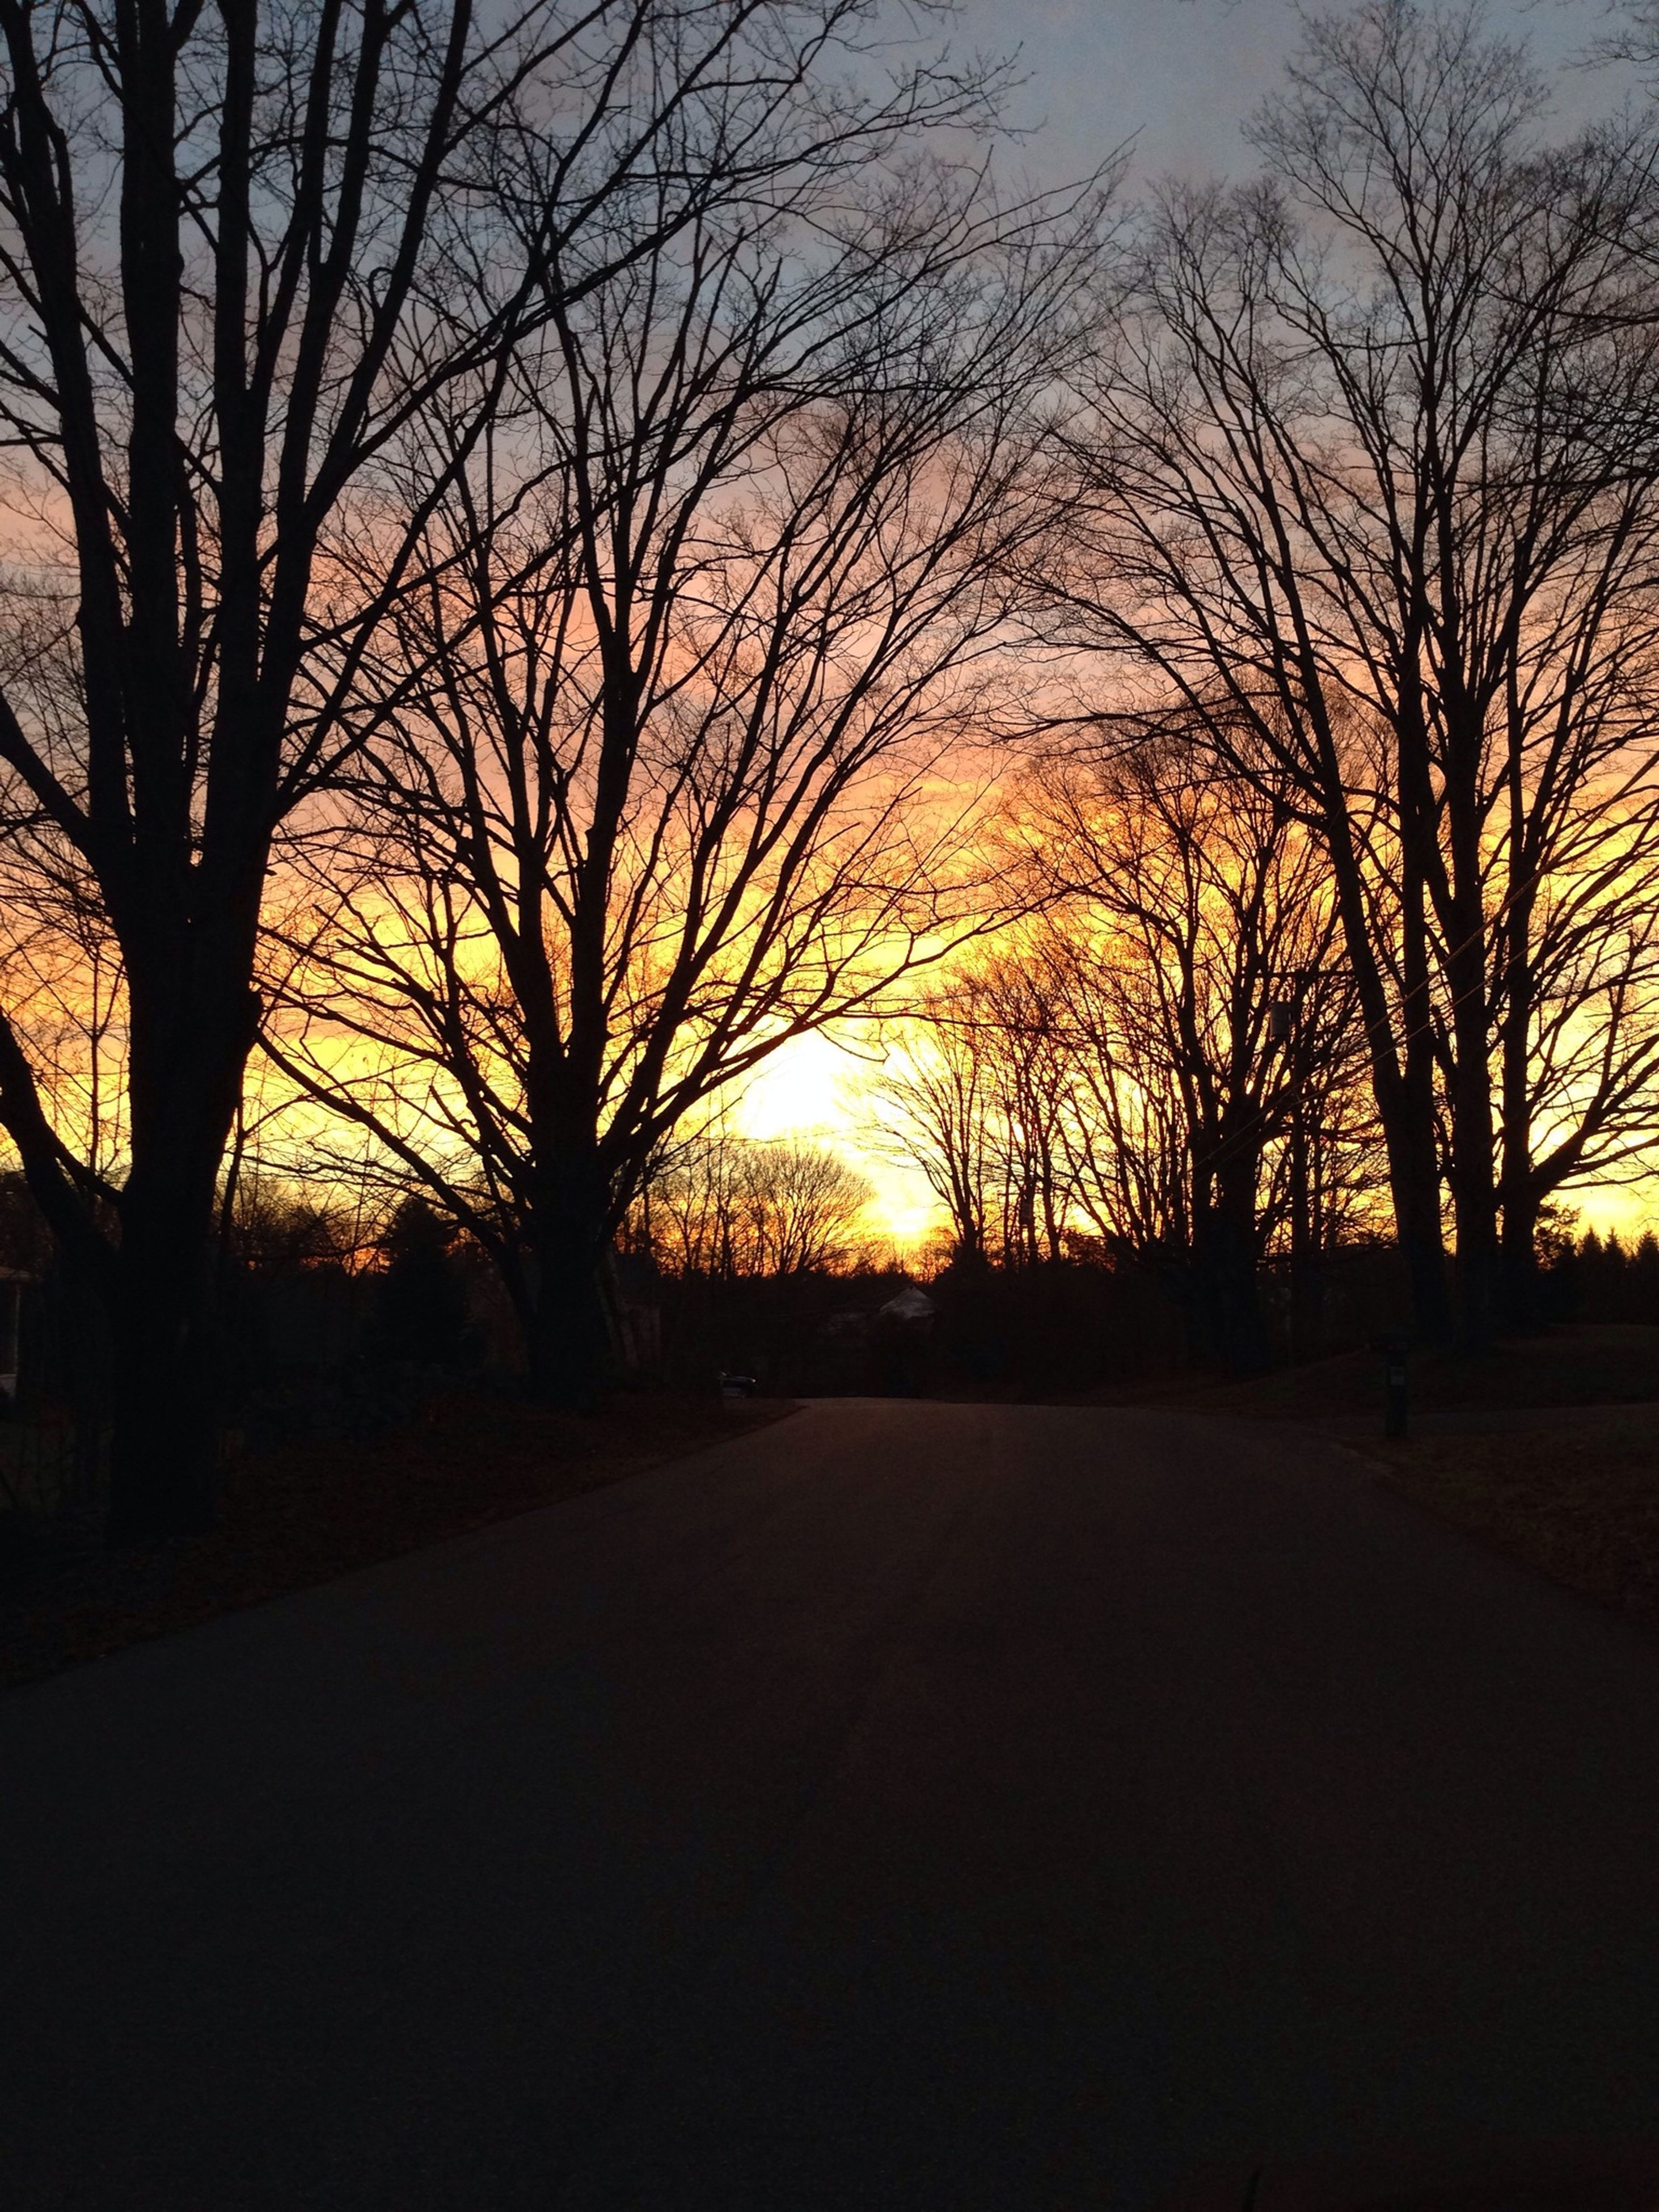 sunset, bare tree, silhouette, tree, the way forward, tranquility, orange color, tranquil scene, road, sky, scenics, branch, beauty in nature, nature, sun, diminishing perspective, transportation, vanishing point, landscape, outdoors